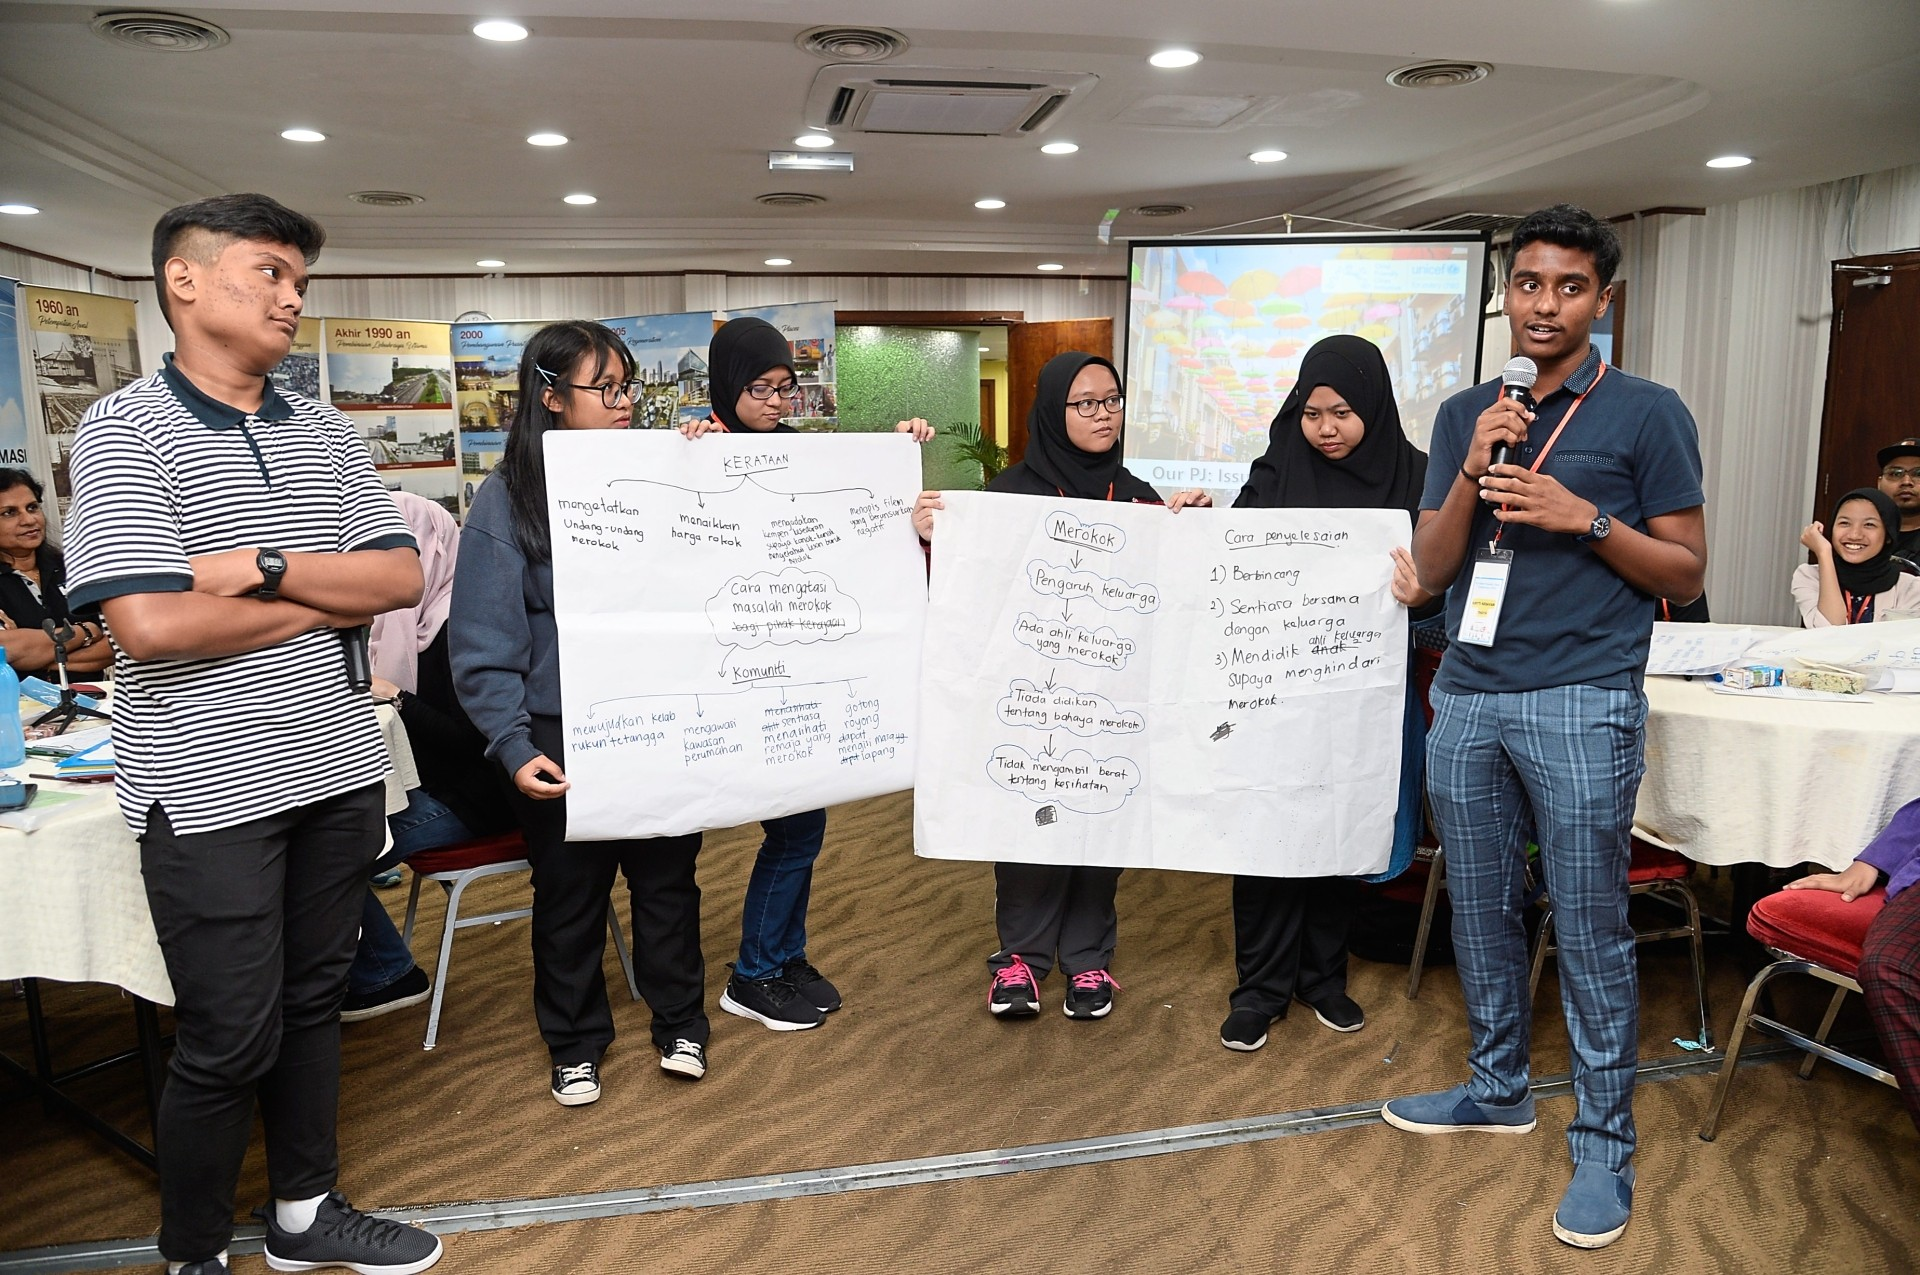 Kirtti Kesavan (right), who says adults should make a point to listen to children, presenting his views on smoking during a workshop.